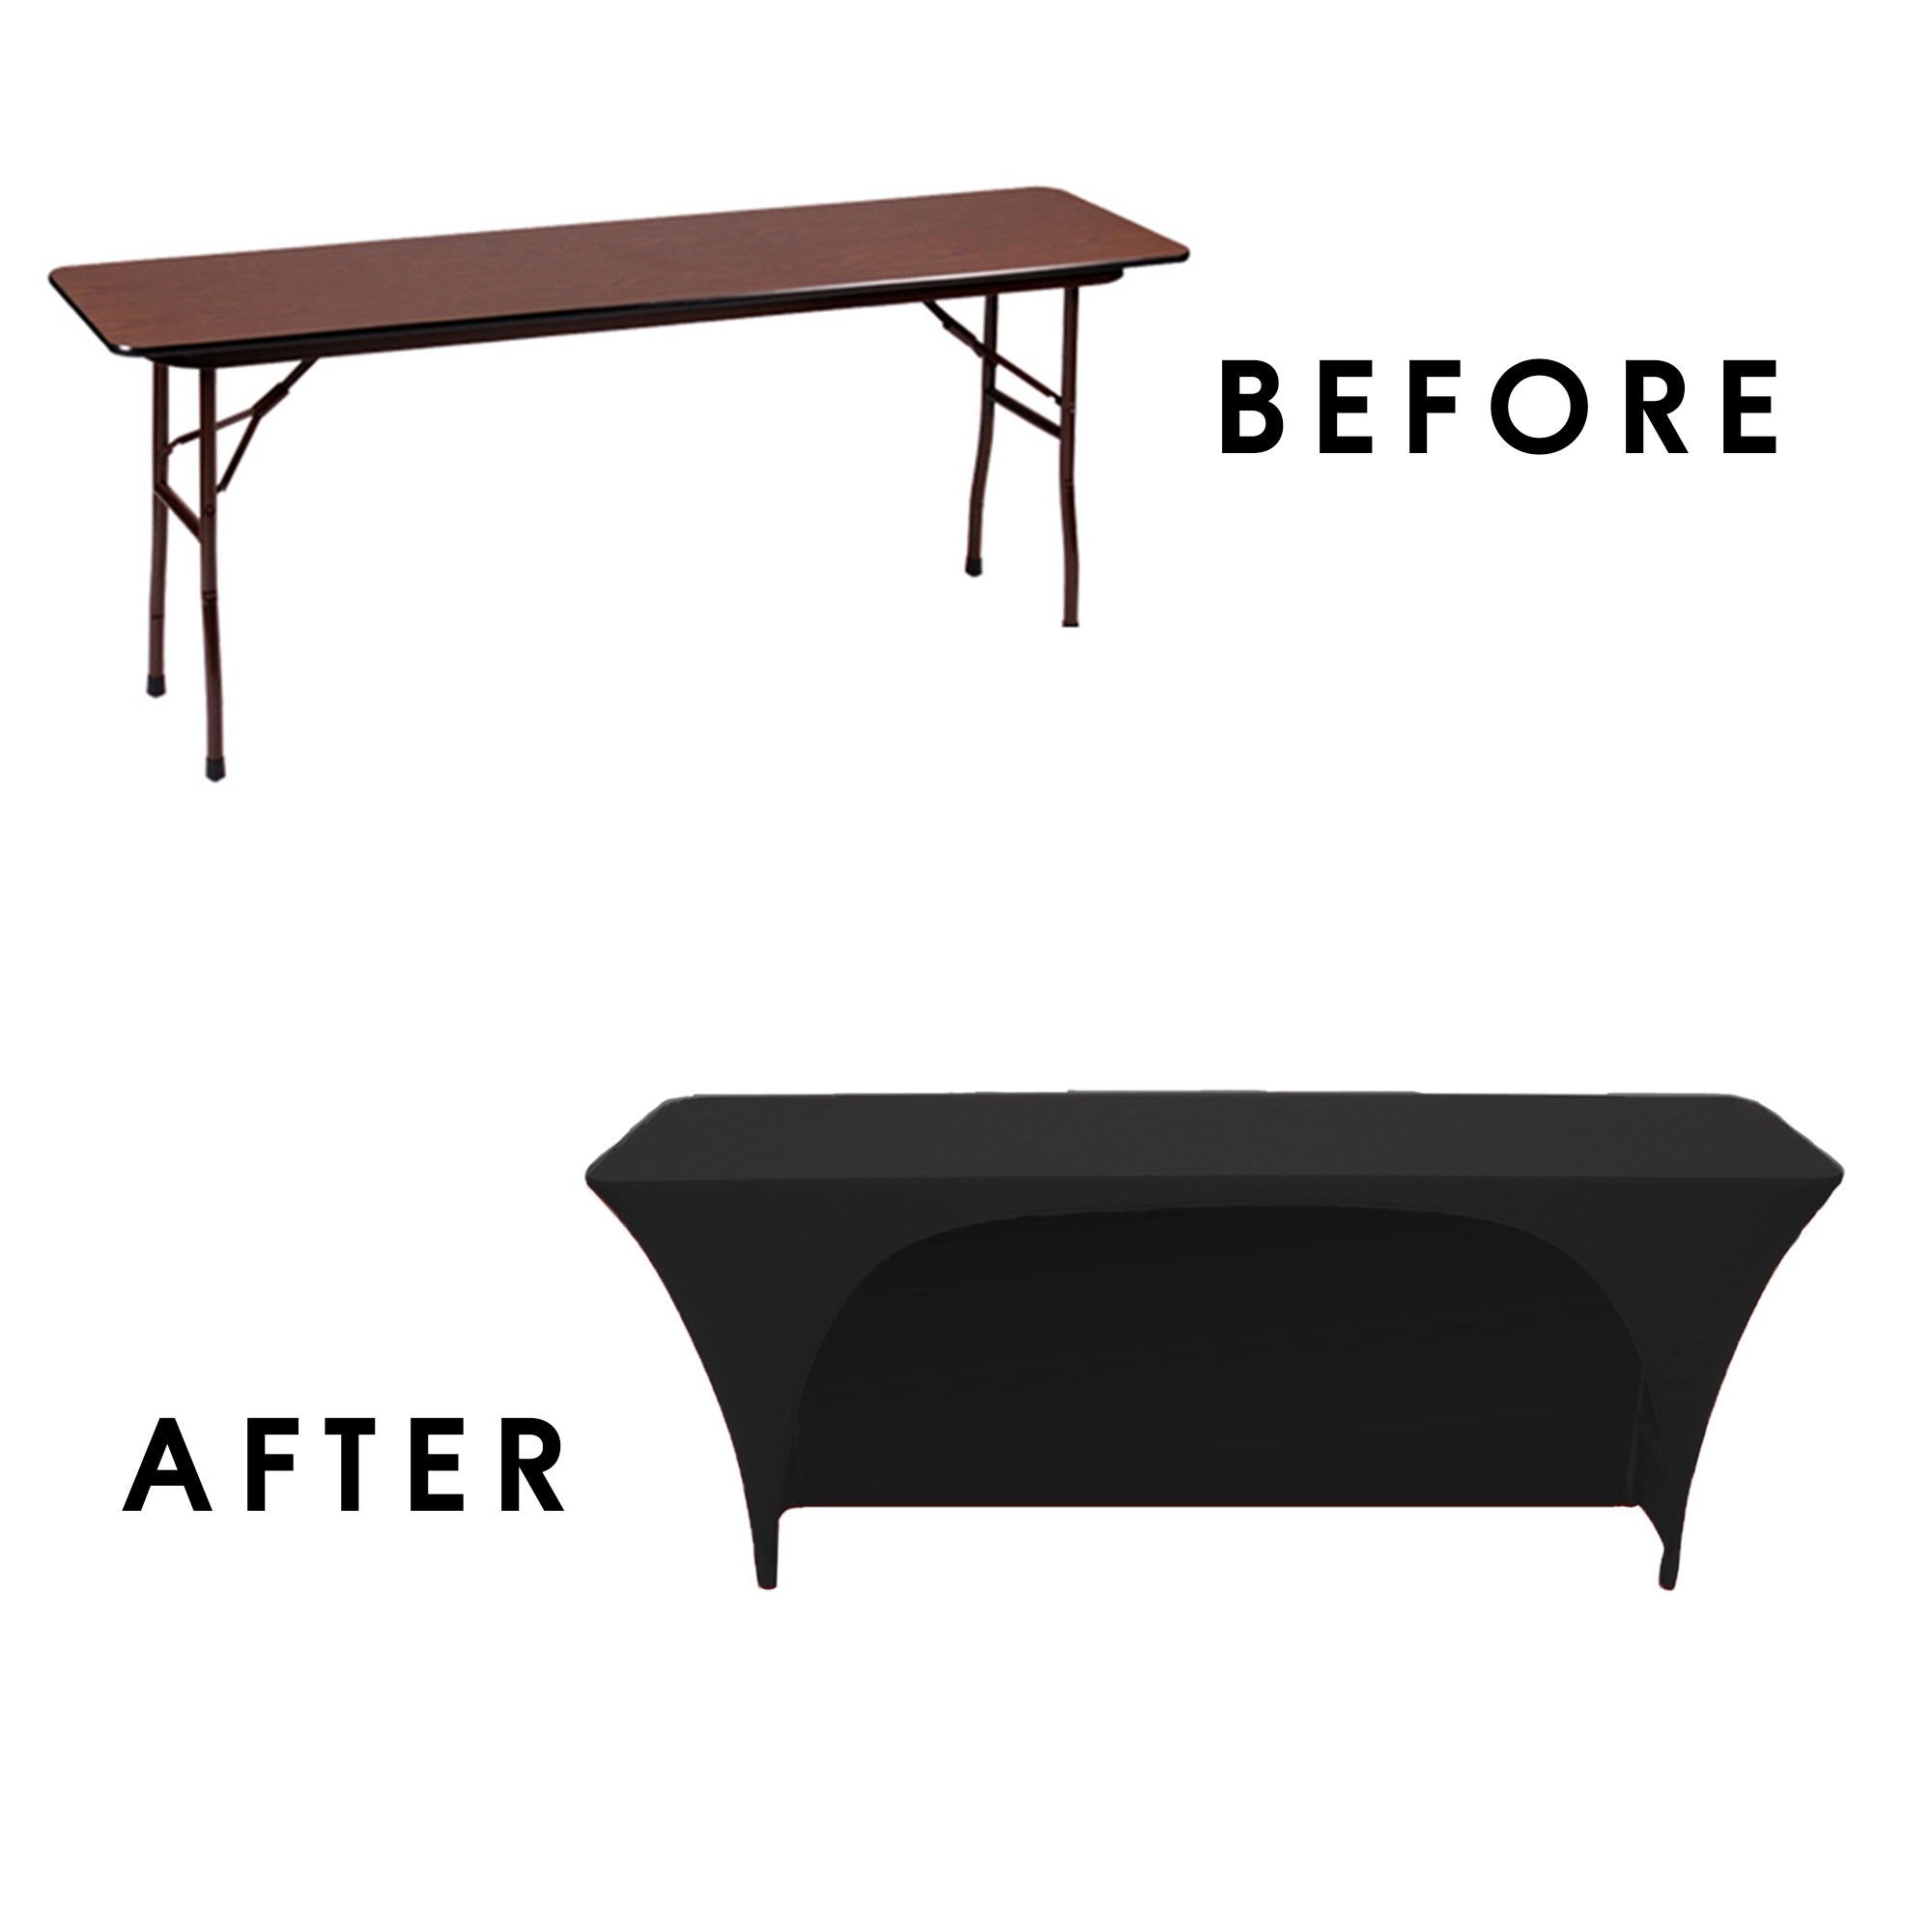 stretch-spandex-6ft-18-inches-open-back-rectangular-table-covers-black-before-after-2.jpg